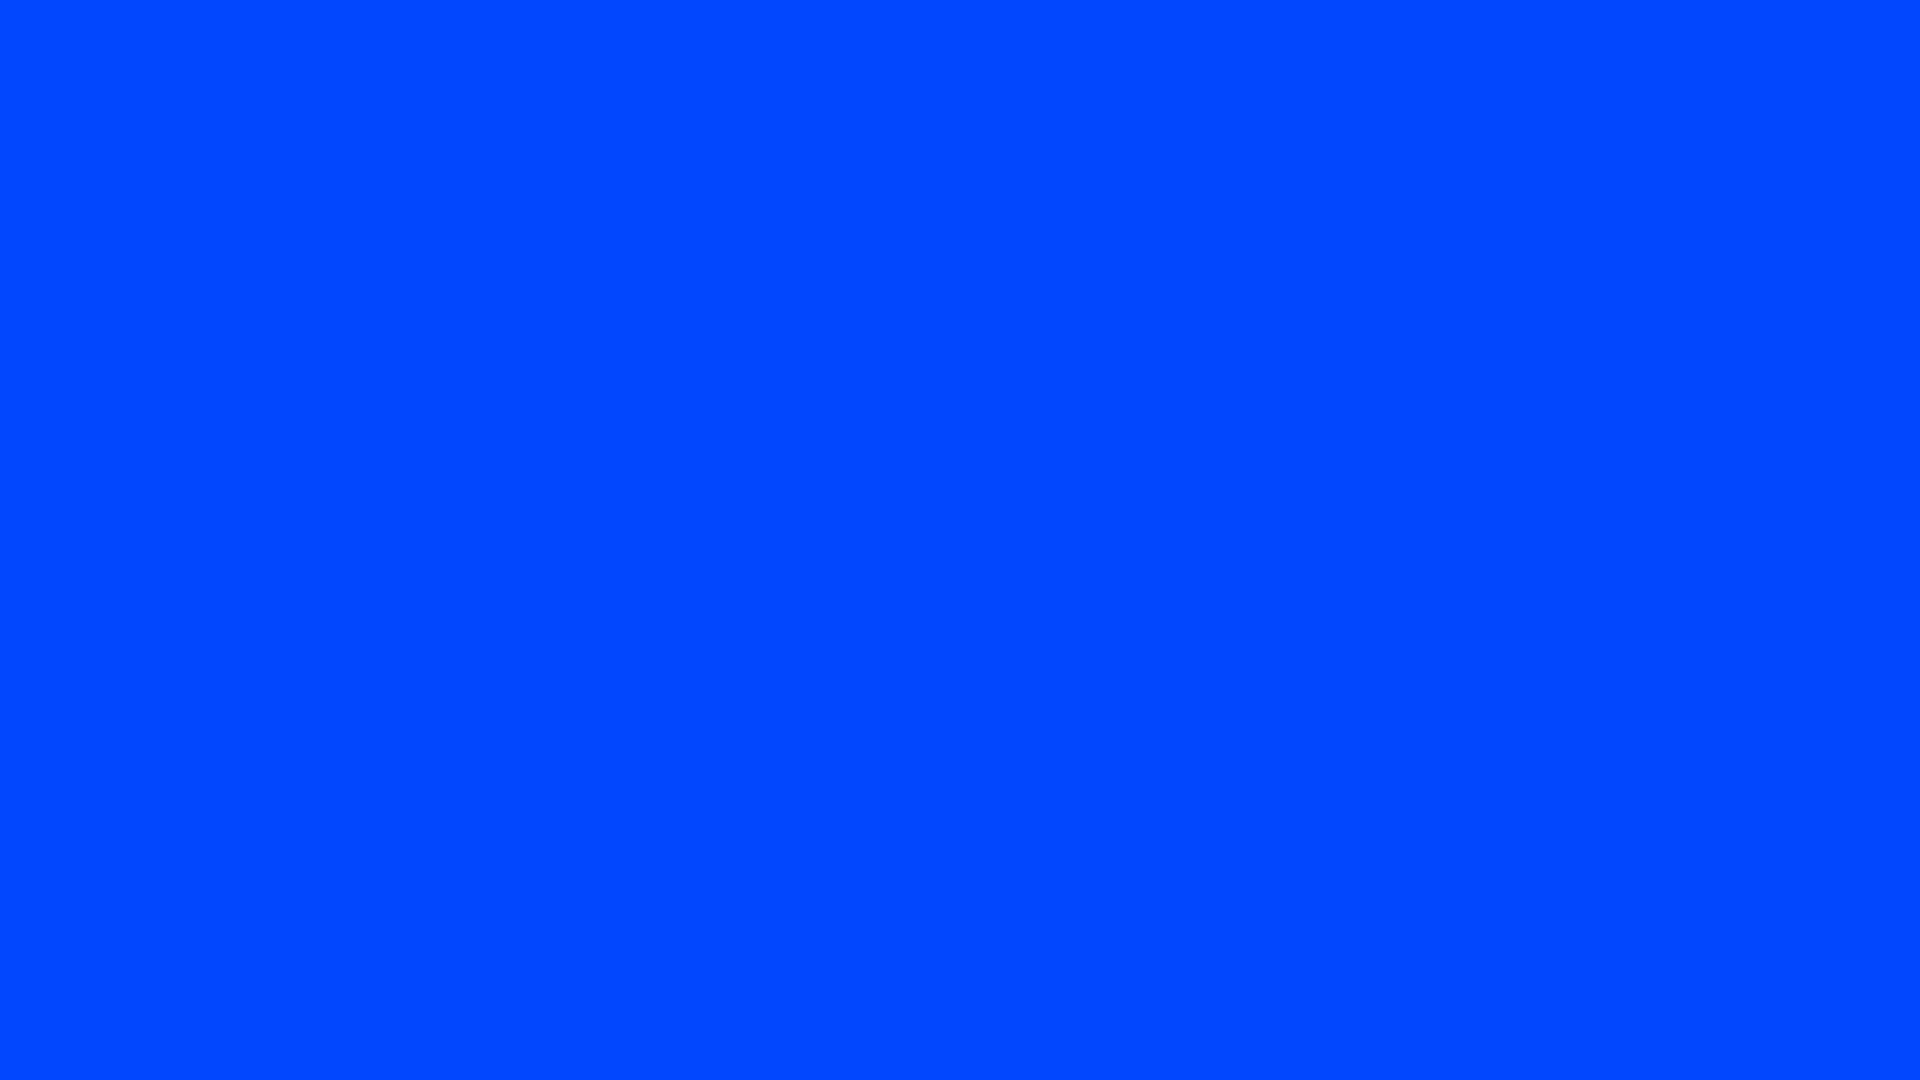 1920x1080 Blue RYB Solid Color Background